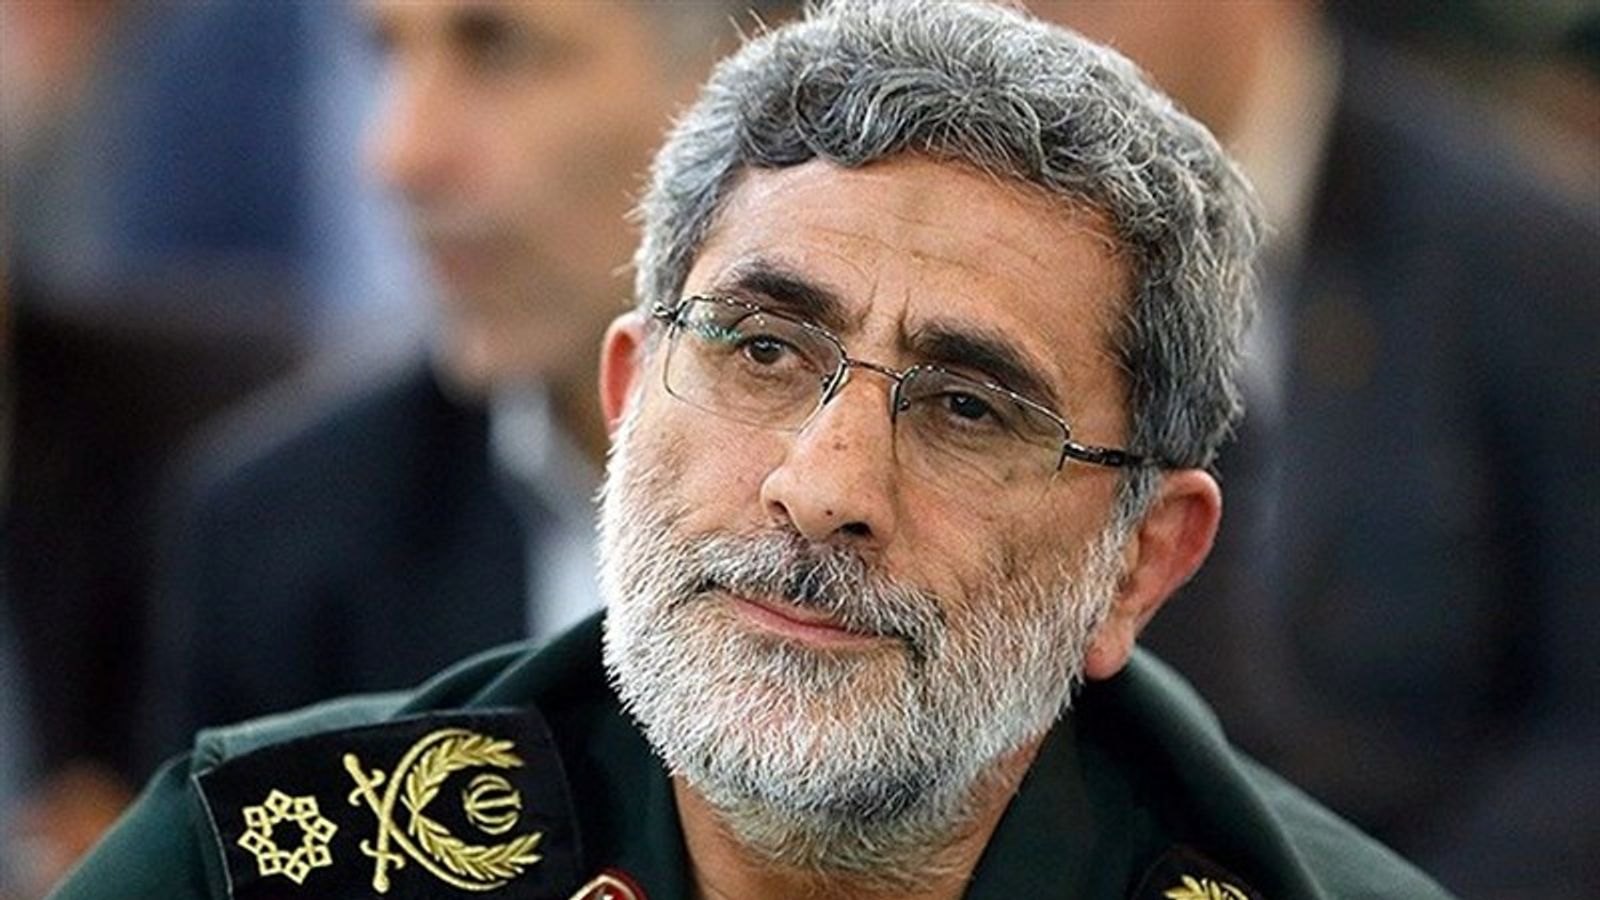 Iran announces new military leader after commander killed